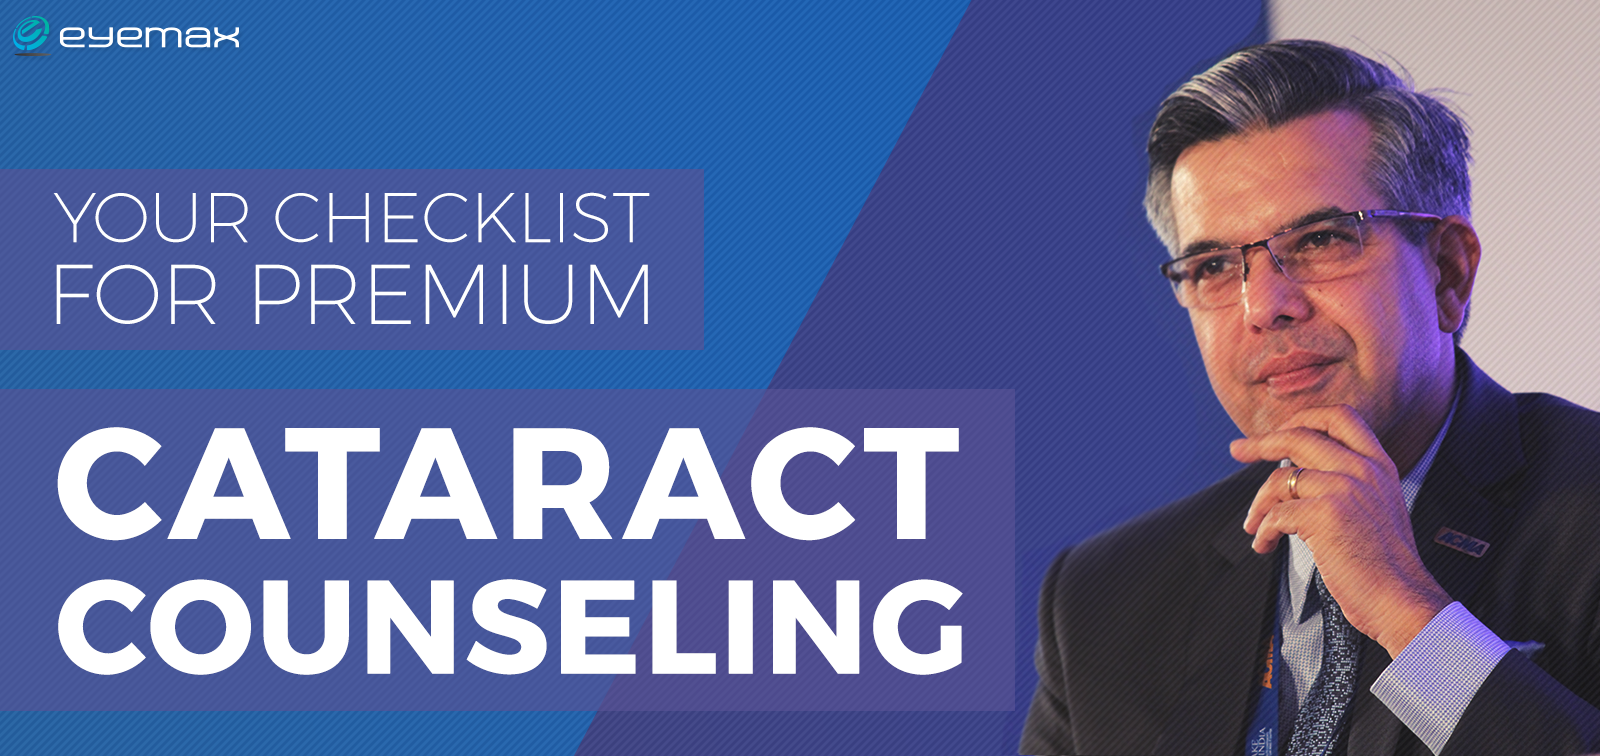 Your Checklist for Premium Cataract Counseling